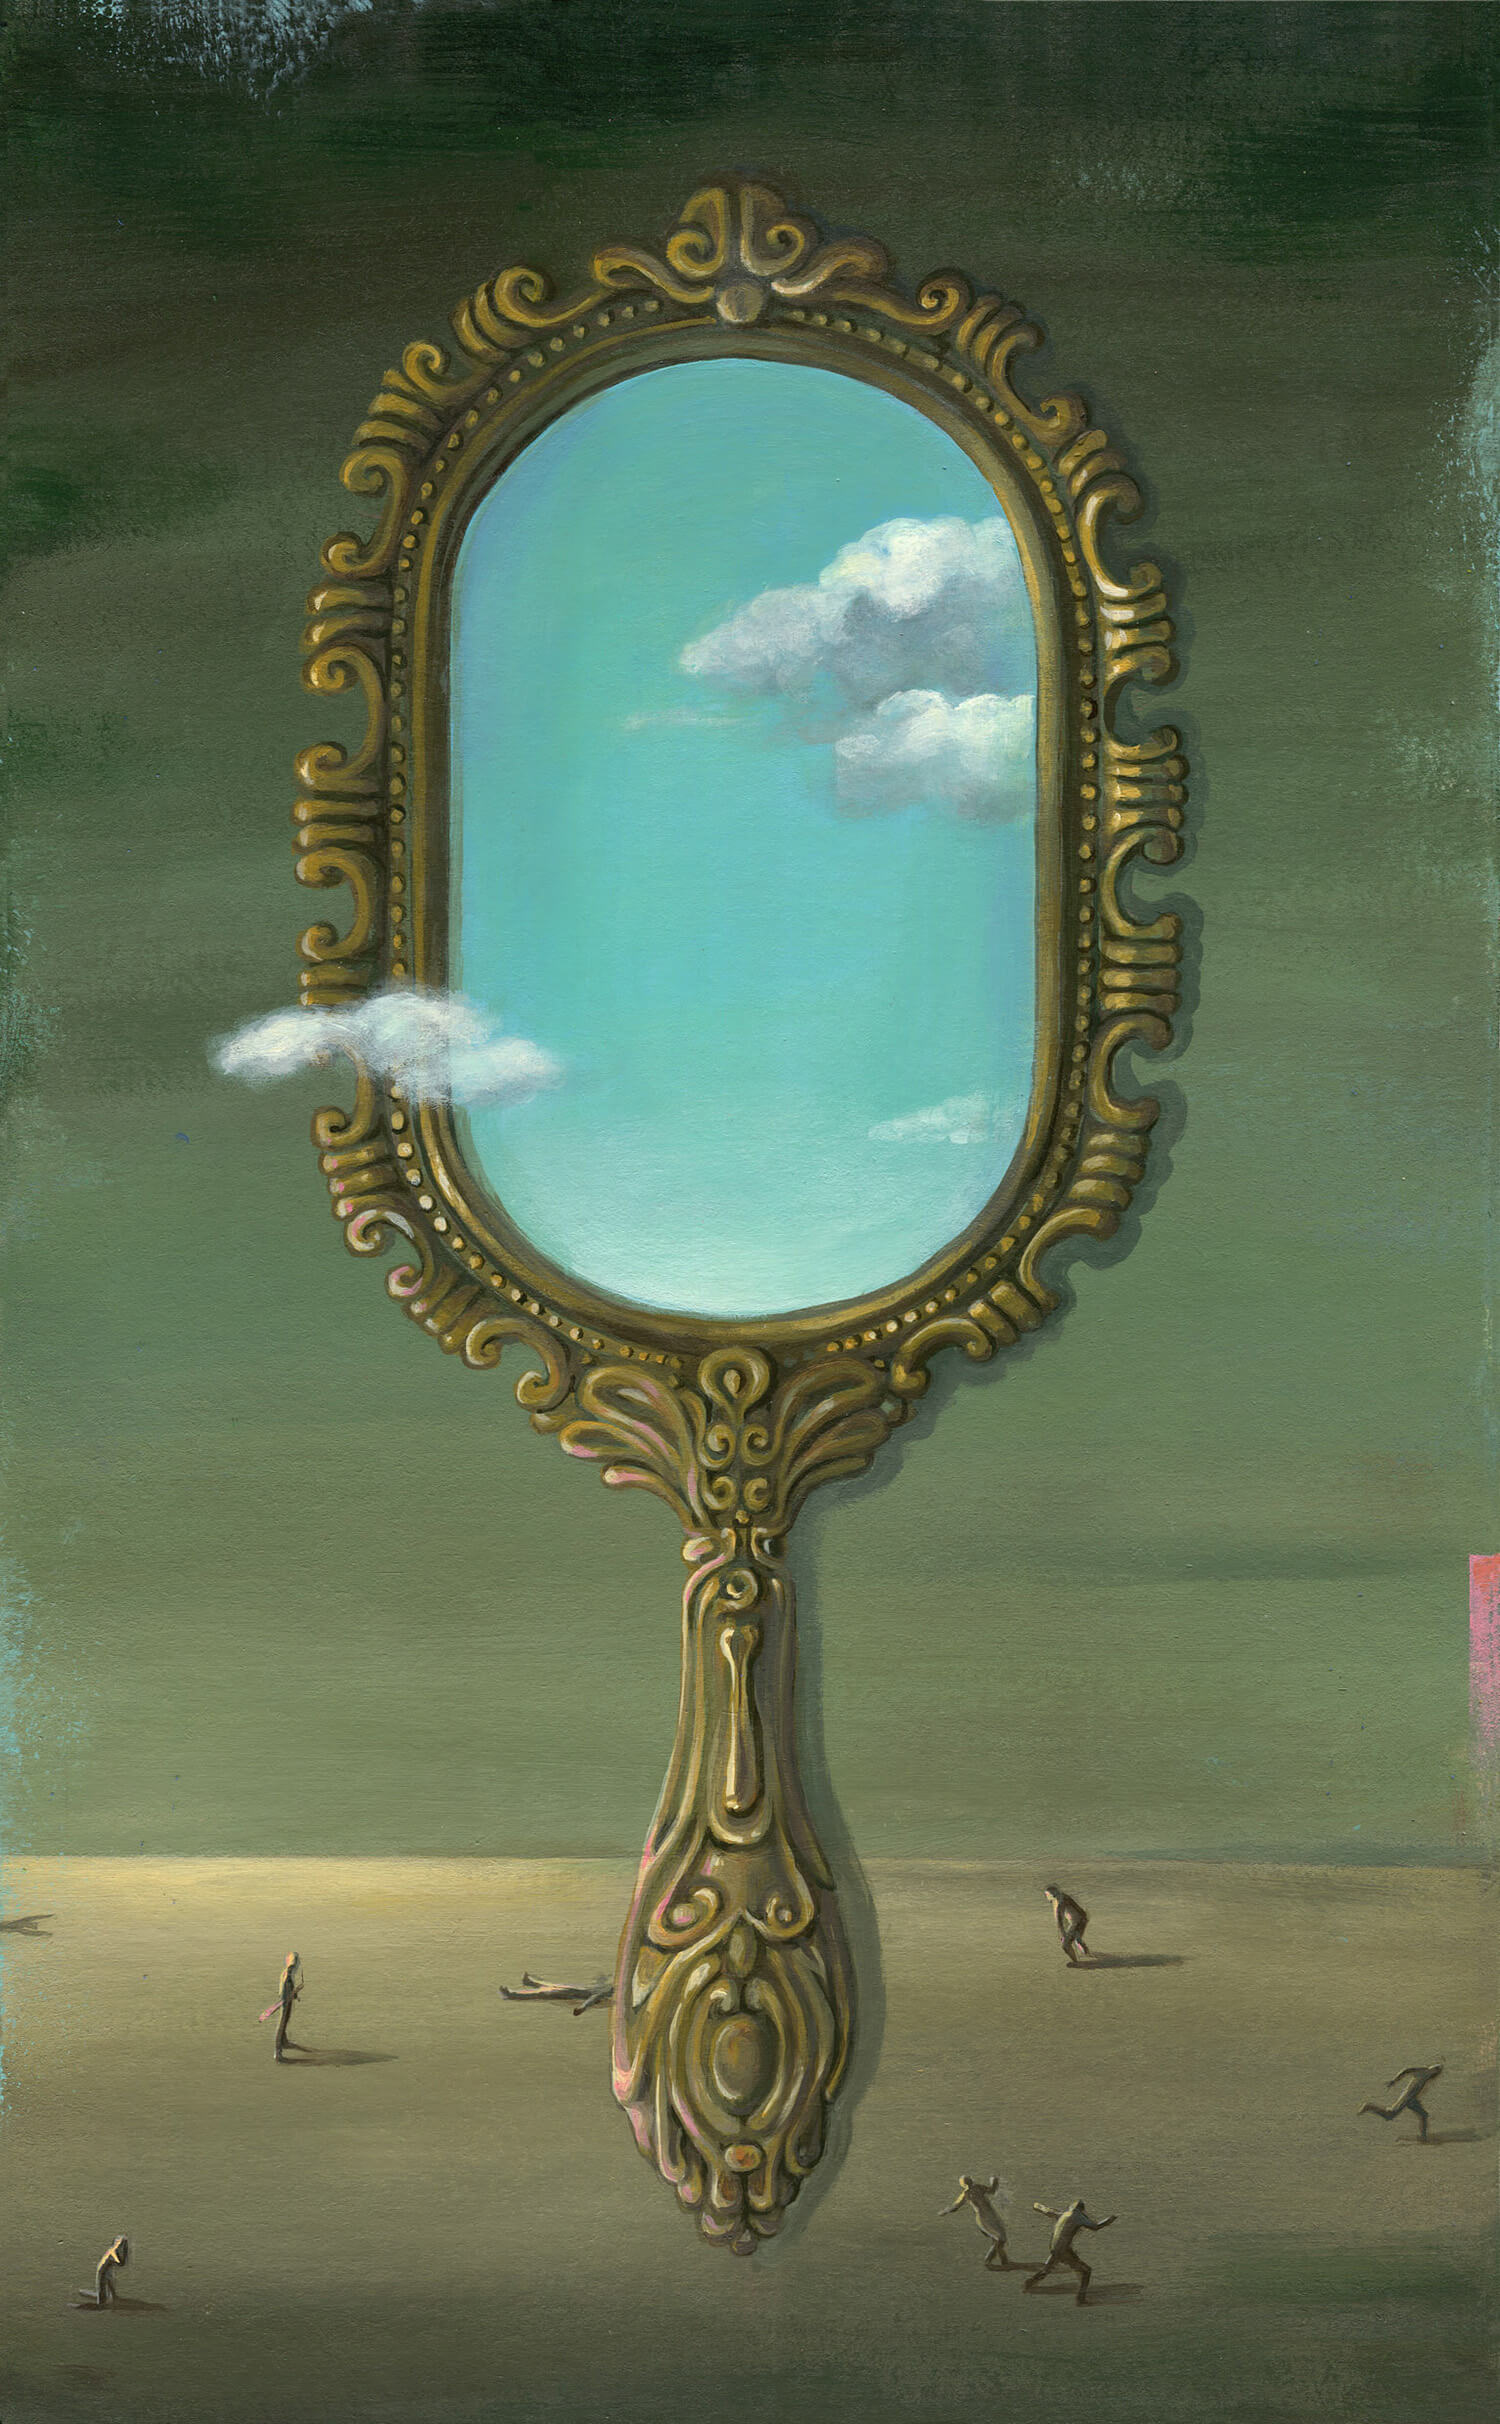 Surreal mirror painting